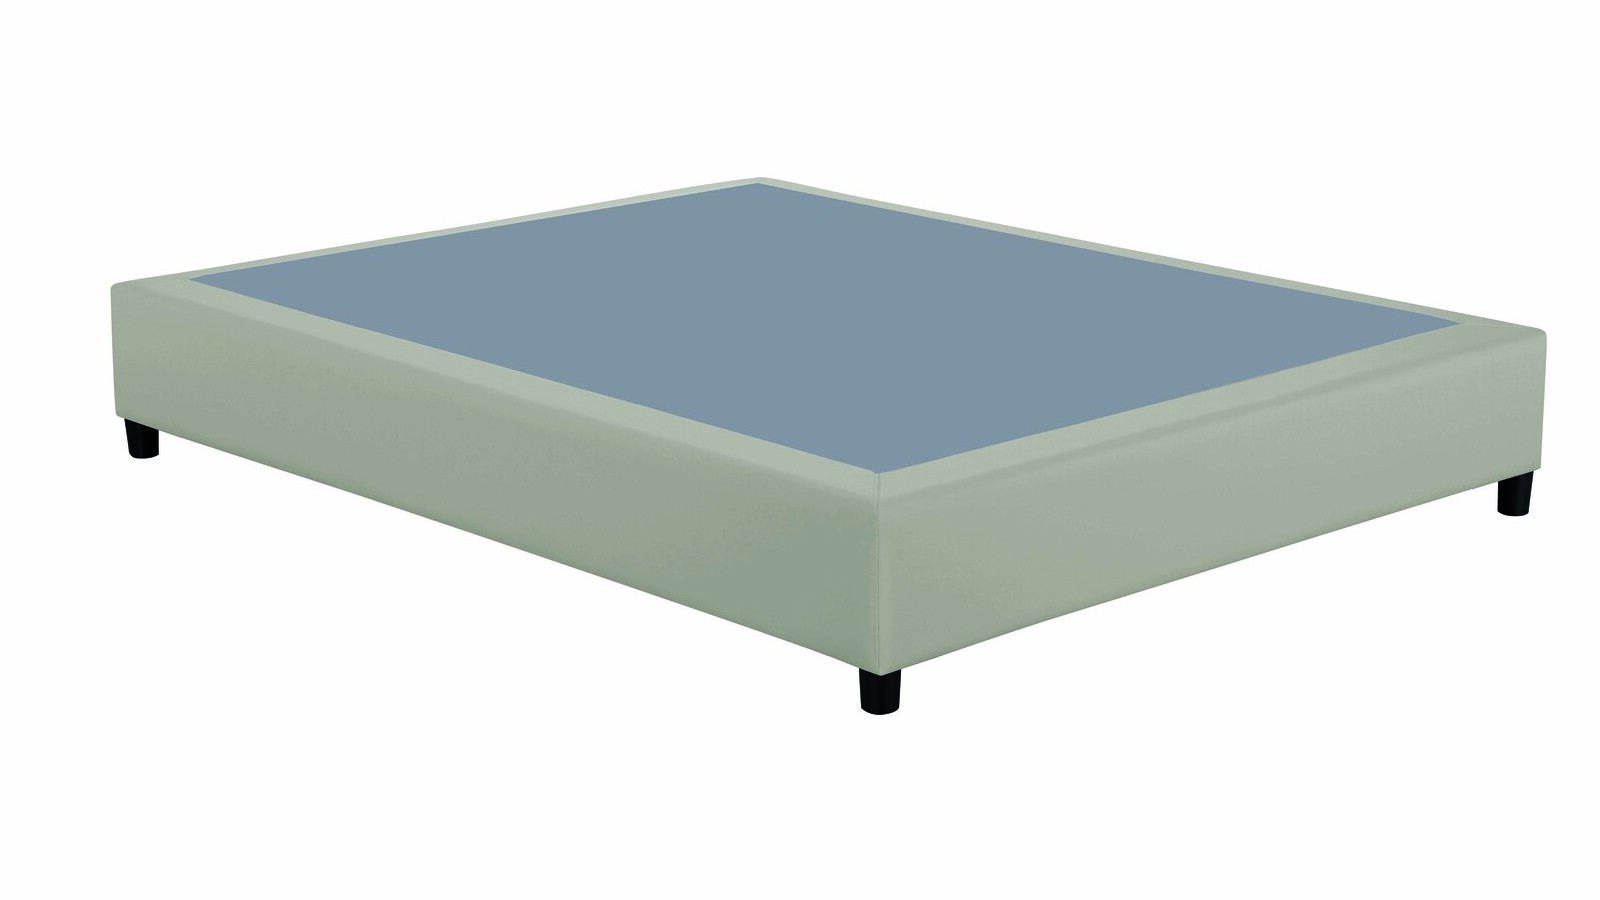 sommier-elettrico-mybed_3